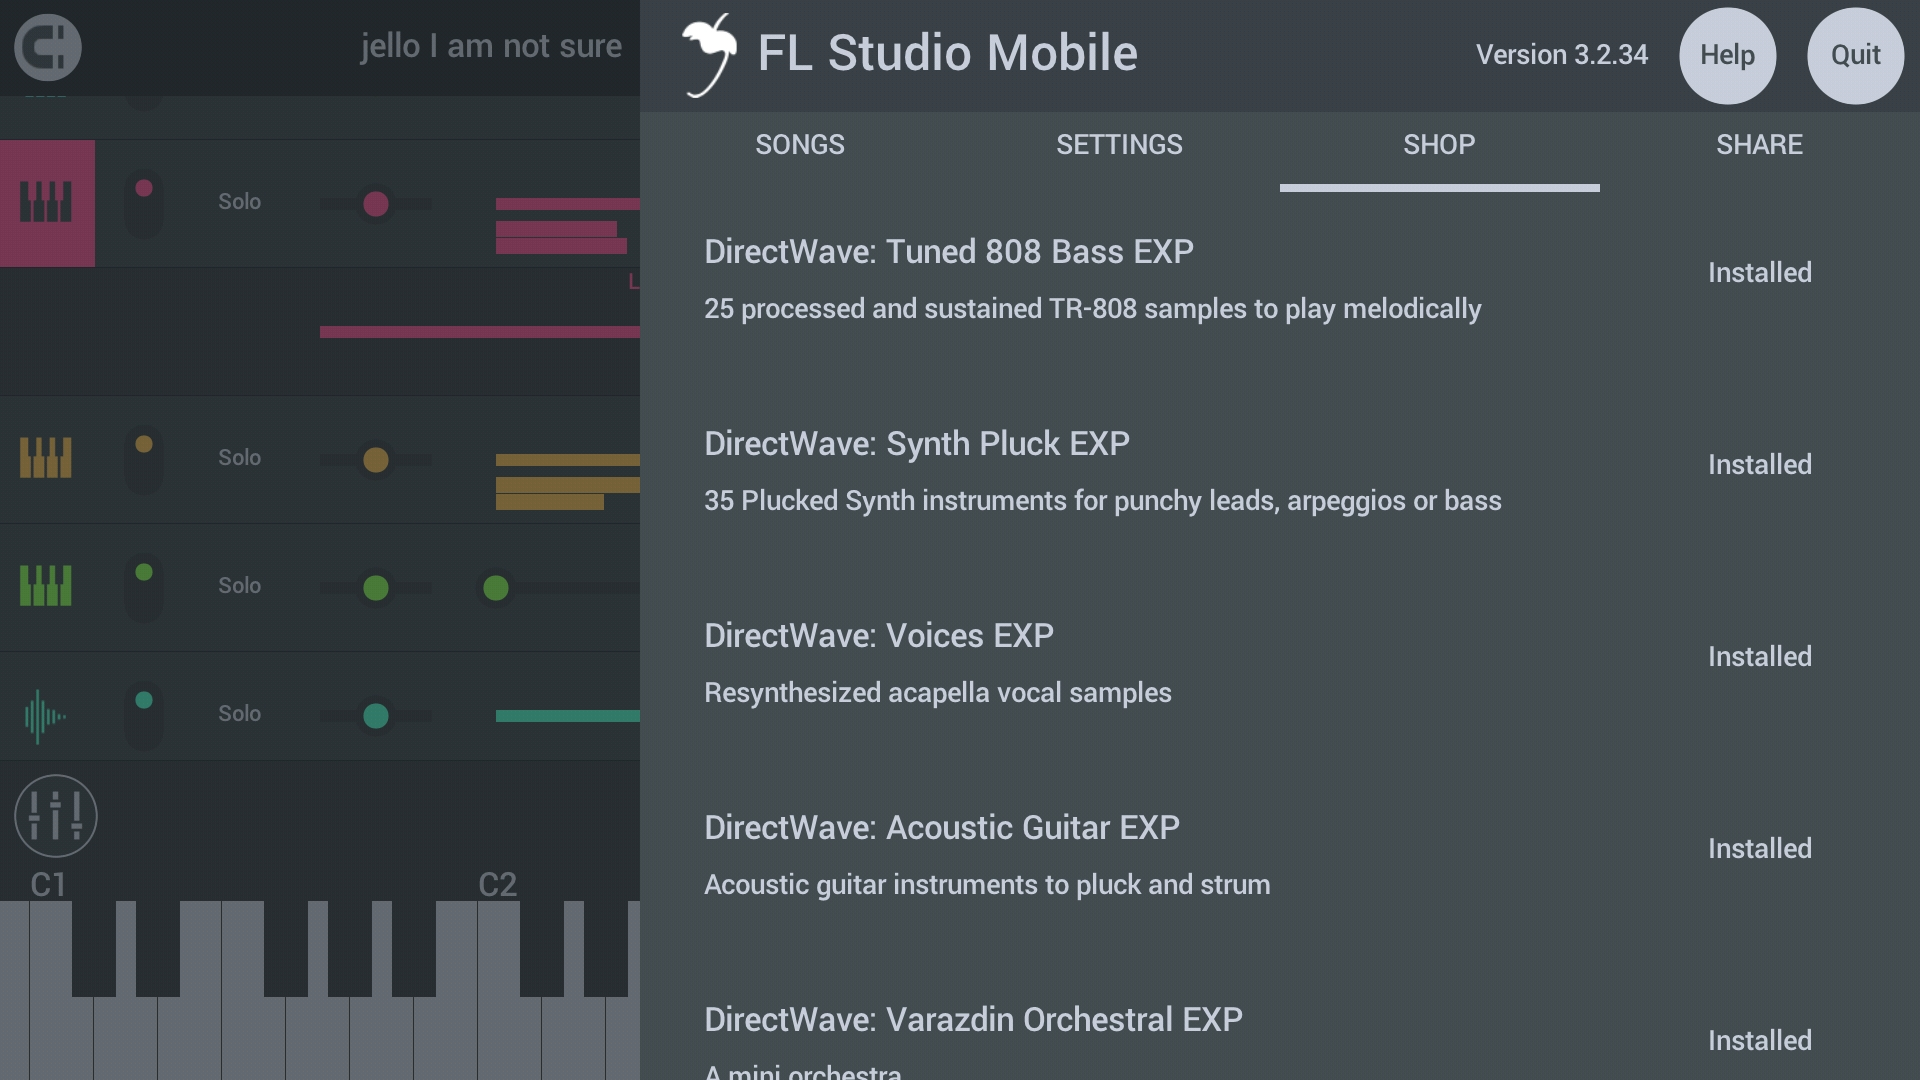 fl studio mobile android apk download